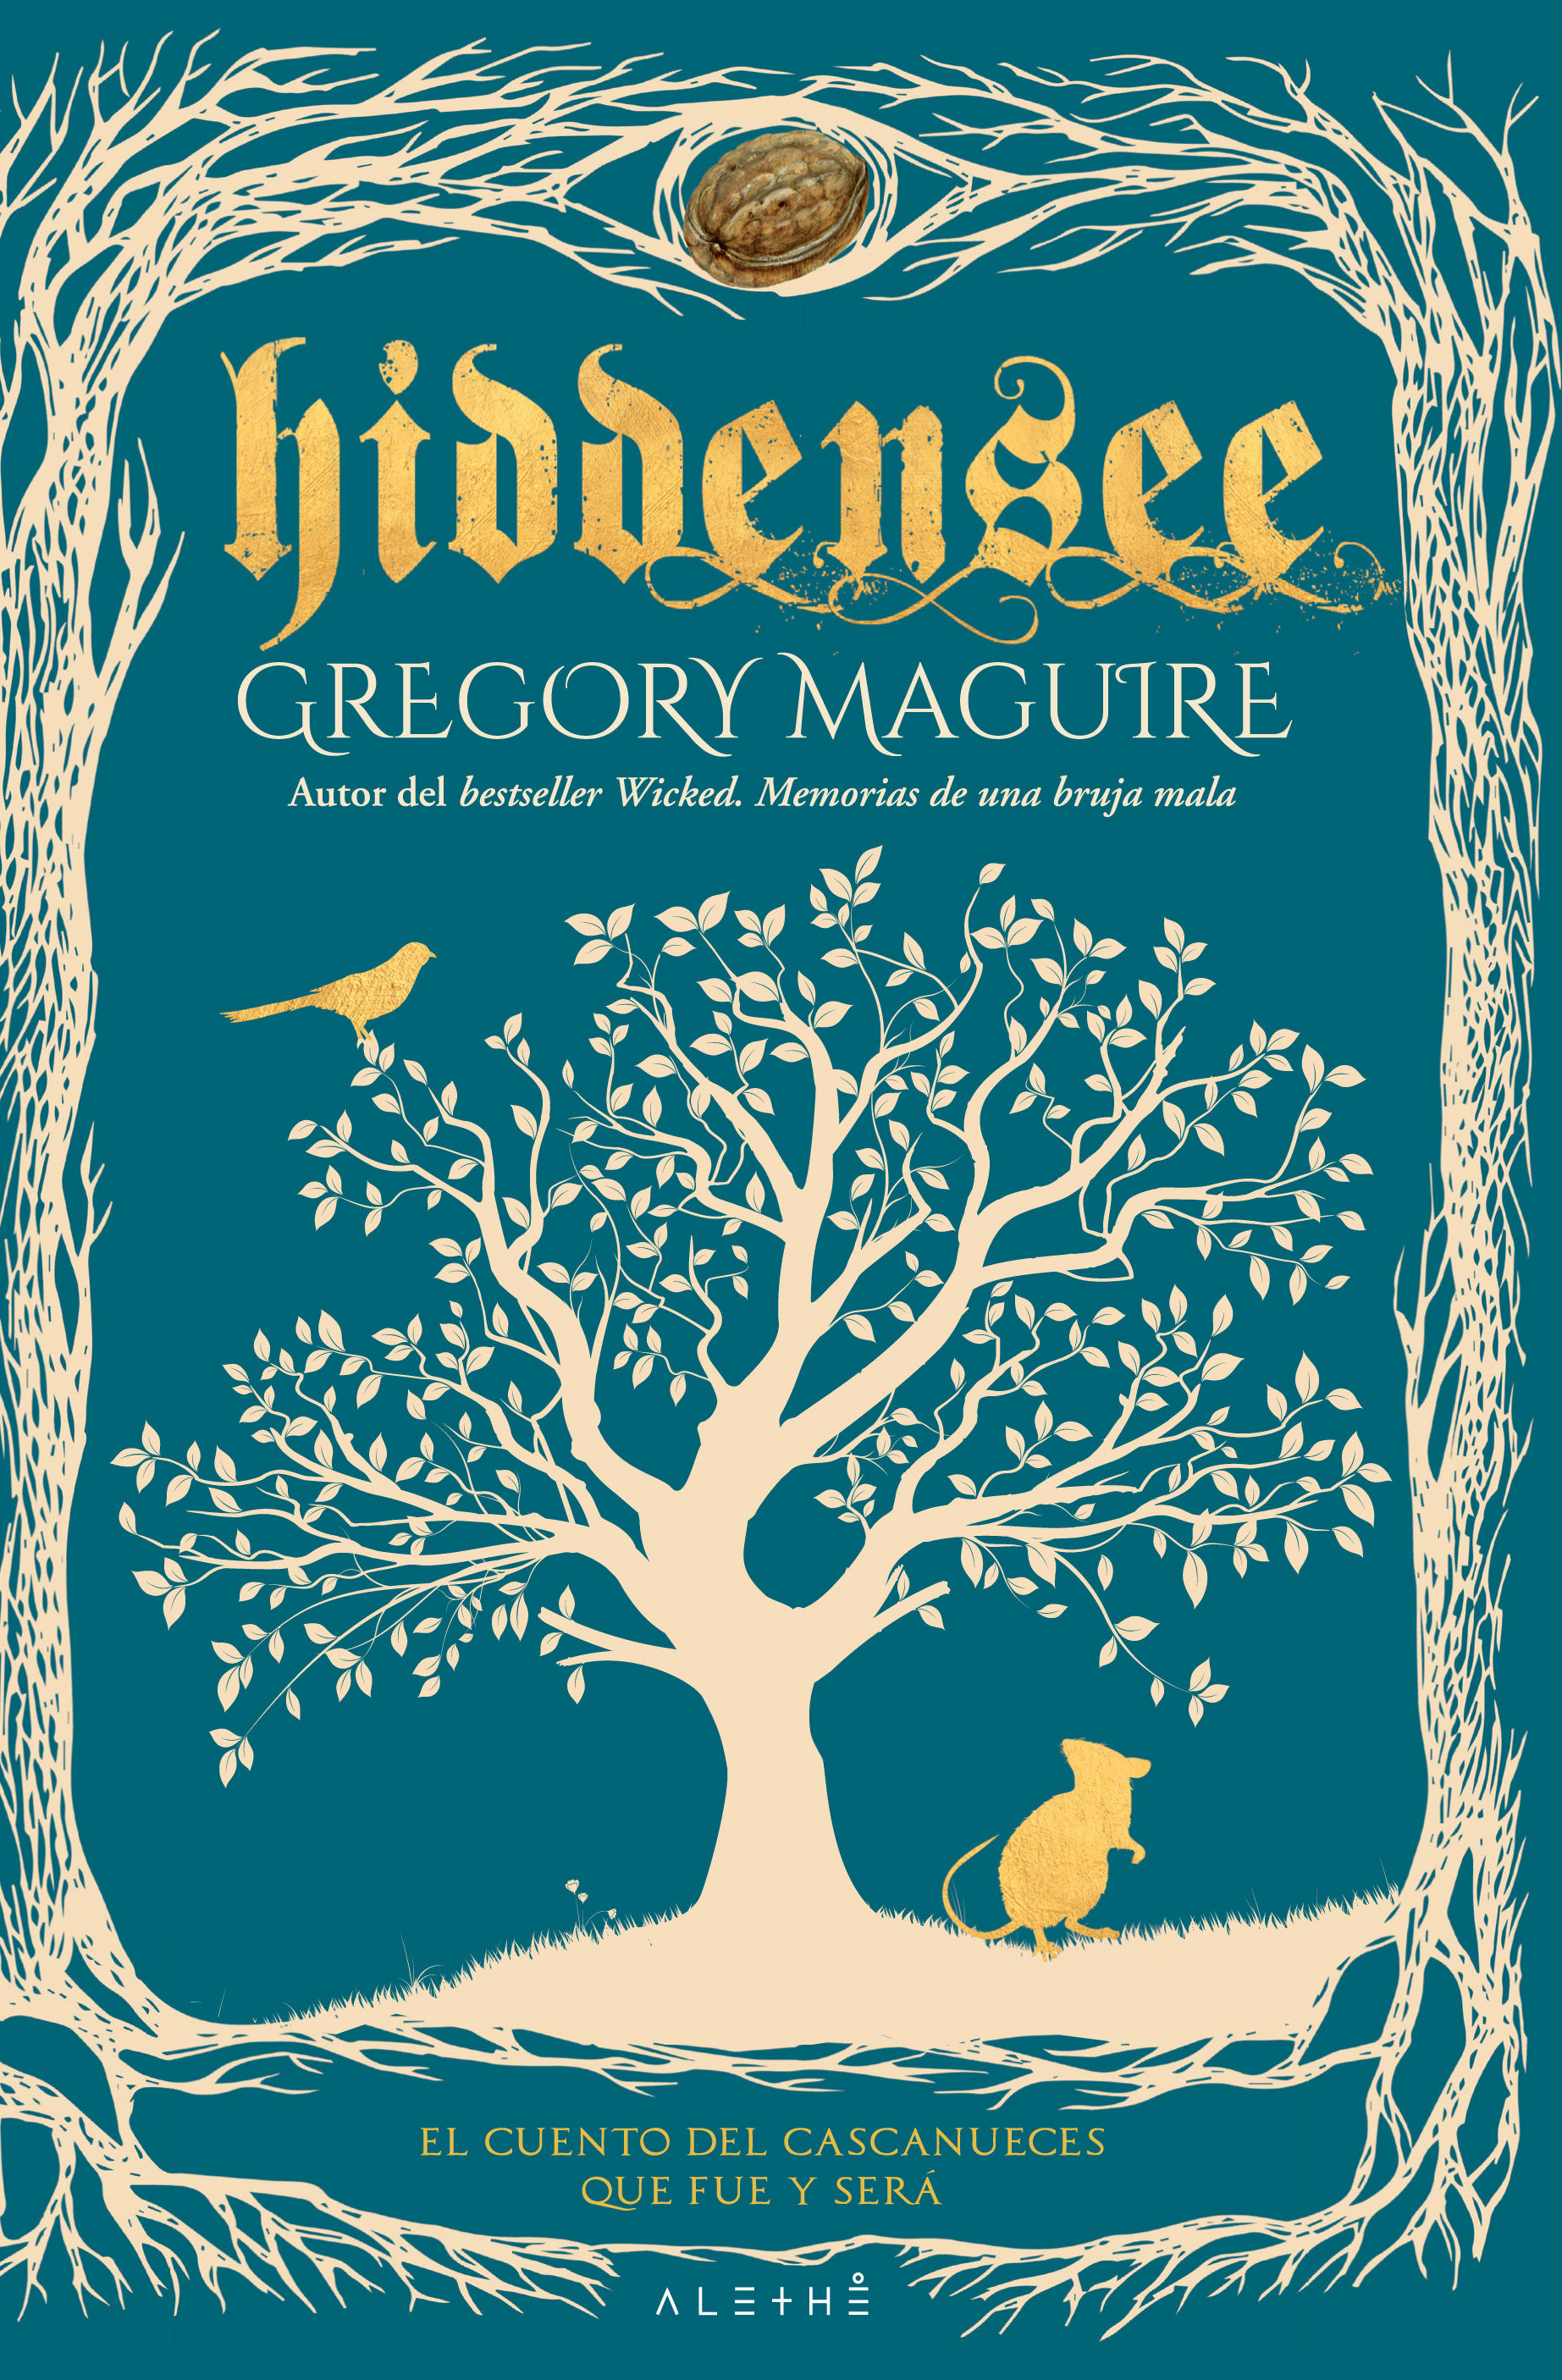 Wicked Libro Hiddensee Ebook Gregory Maguire Descargar Libro Pdf O Epub 9788491642893